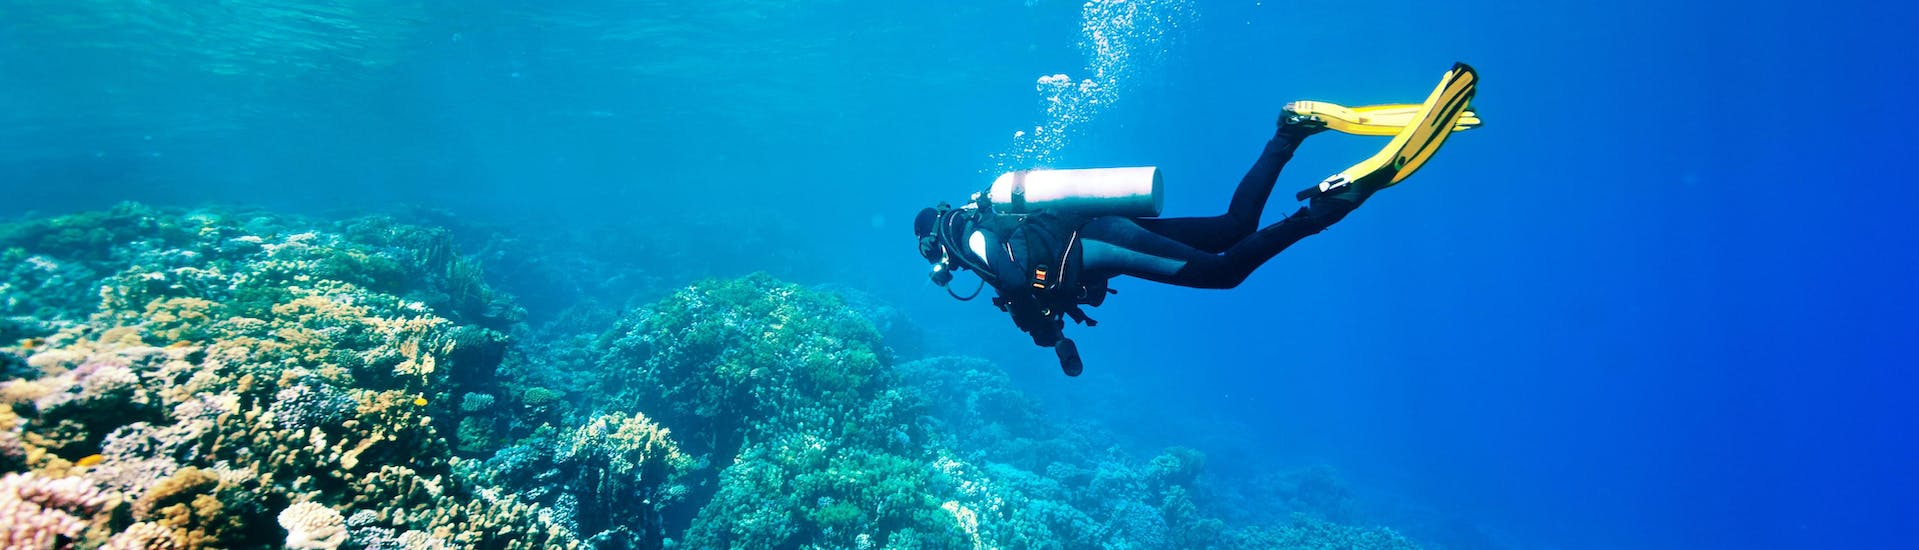 A scuba diver is exploring a reef while scuba diving in the scuba diving destination of Costa Adeje.